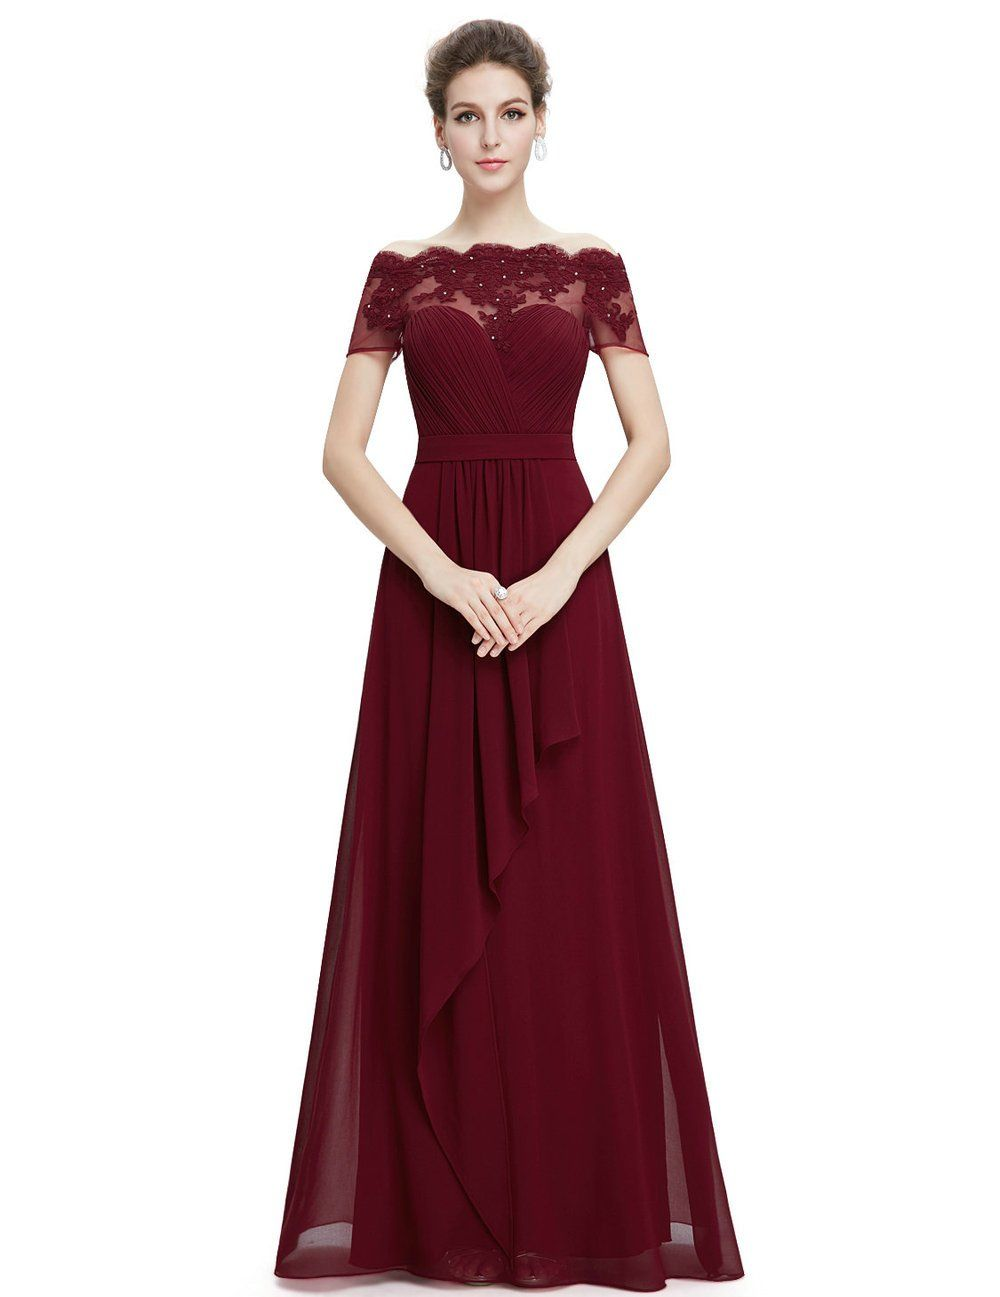 We have many different styles and colors like these burgundy prom dresses.Also 177f9285a6b4